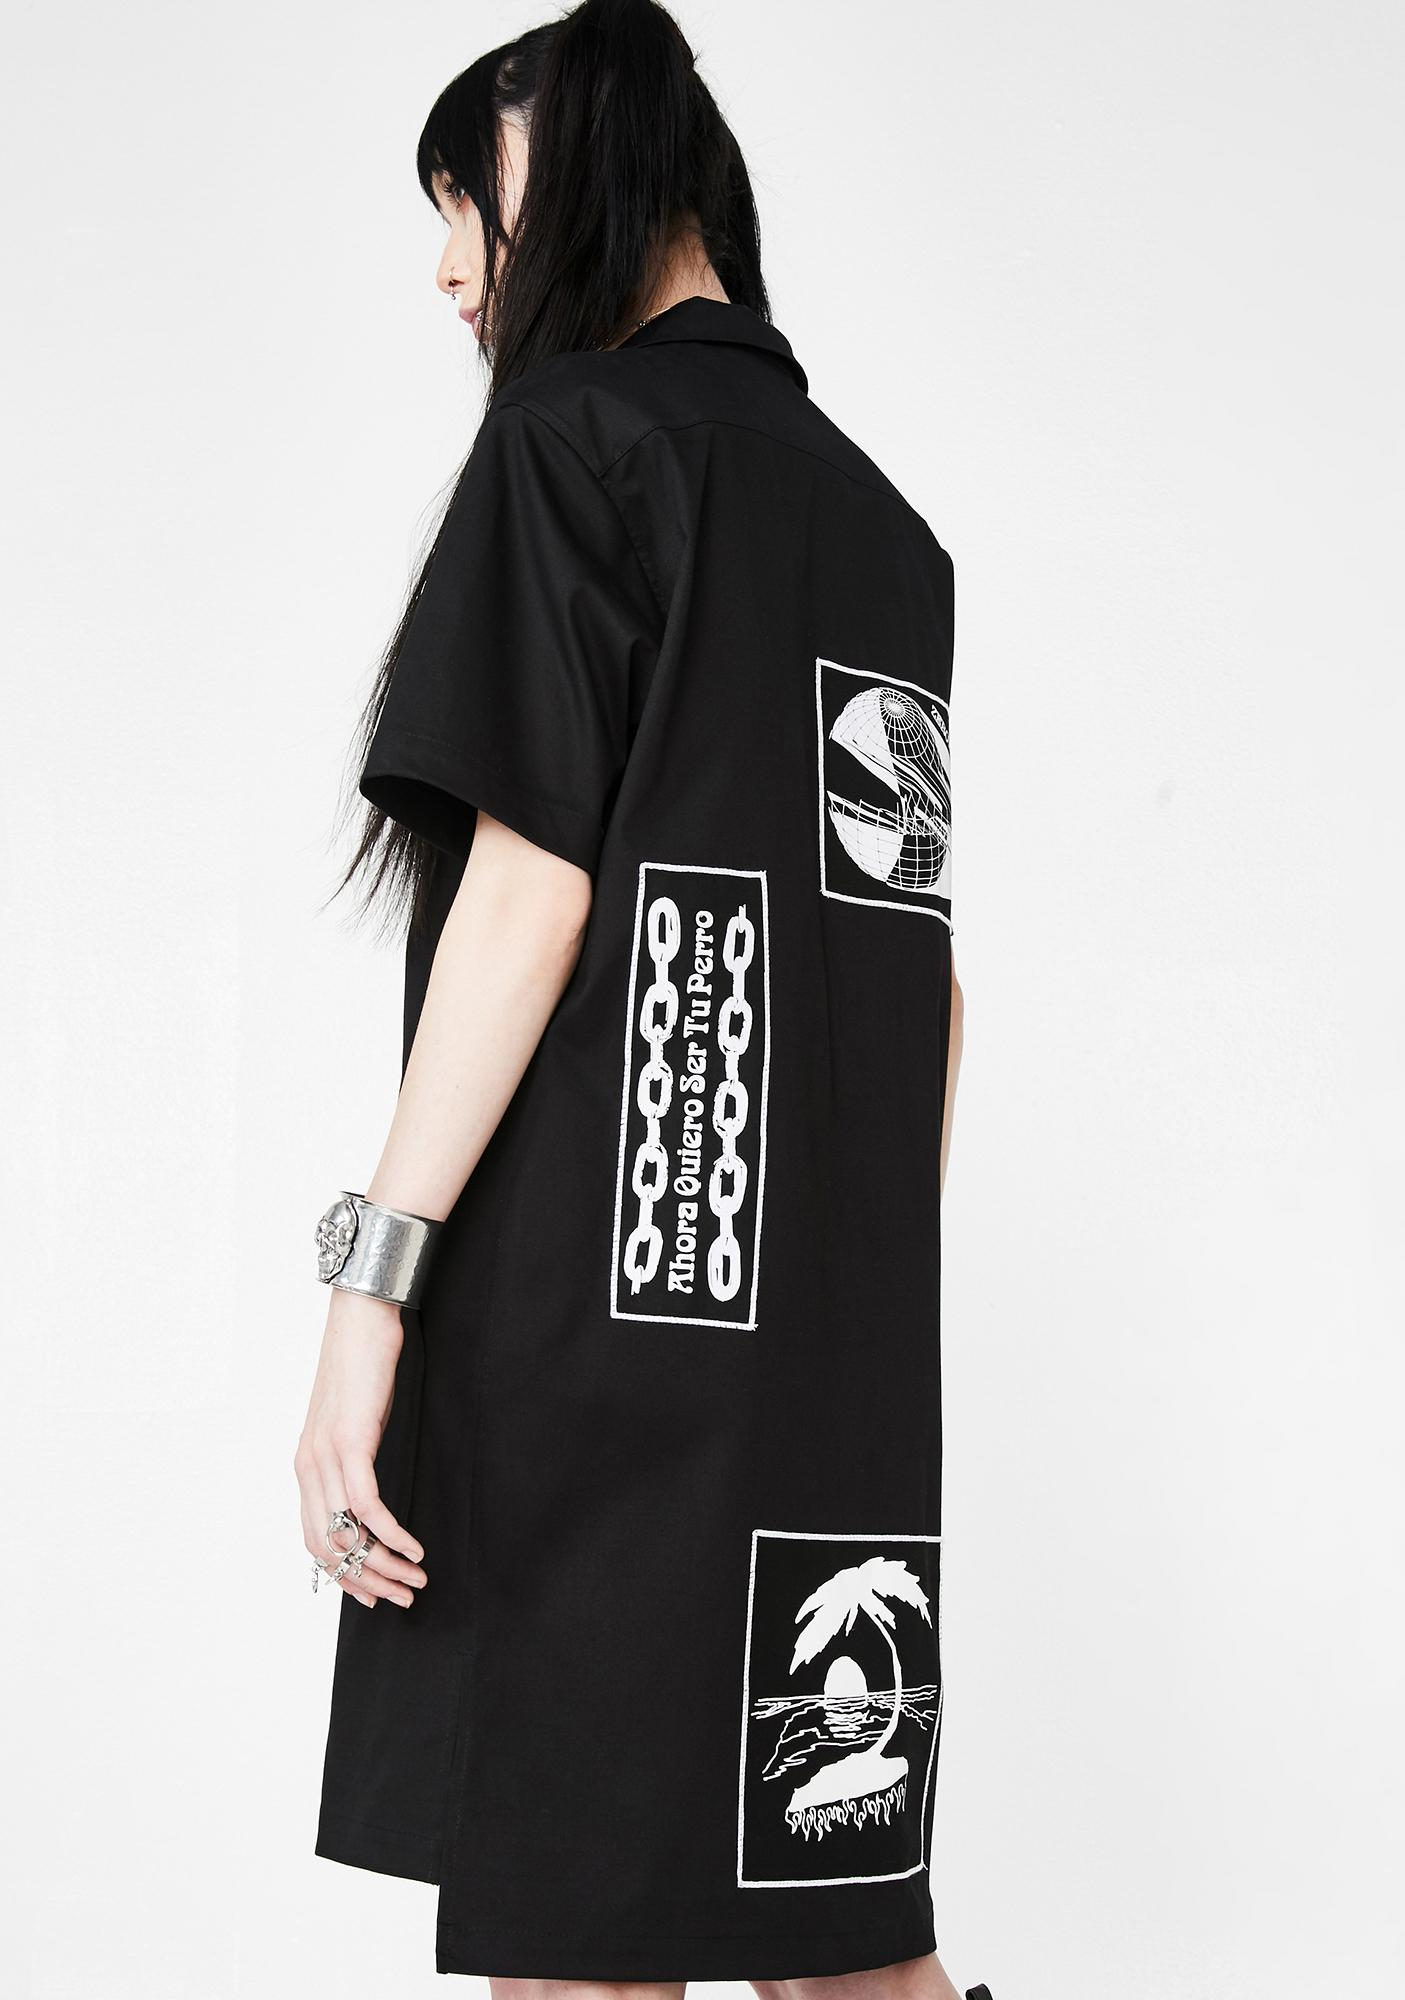 Dreamland Syndicate Zipper Dress With Patches